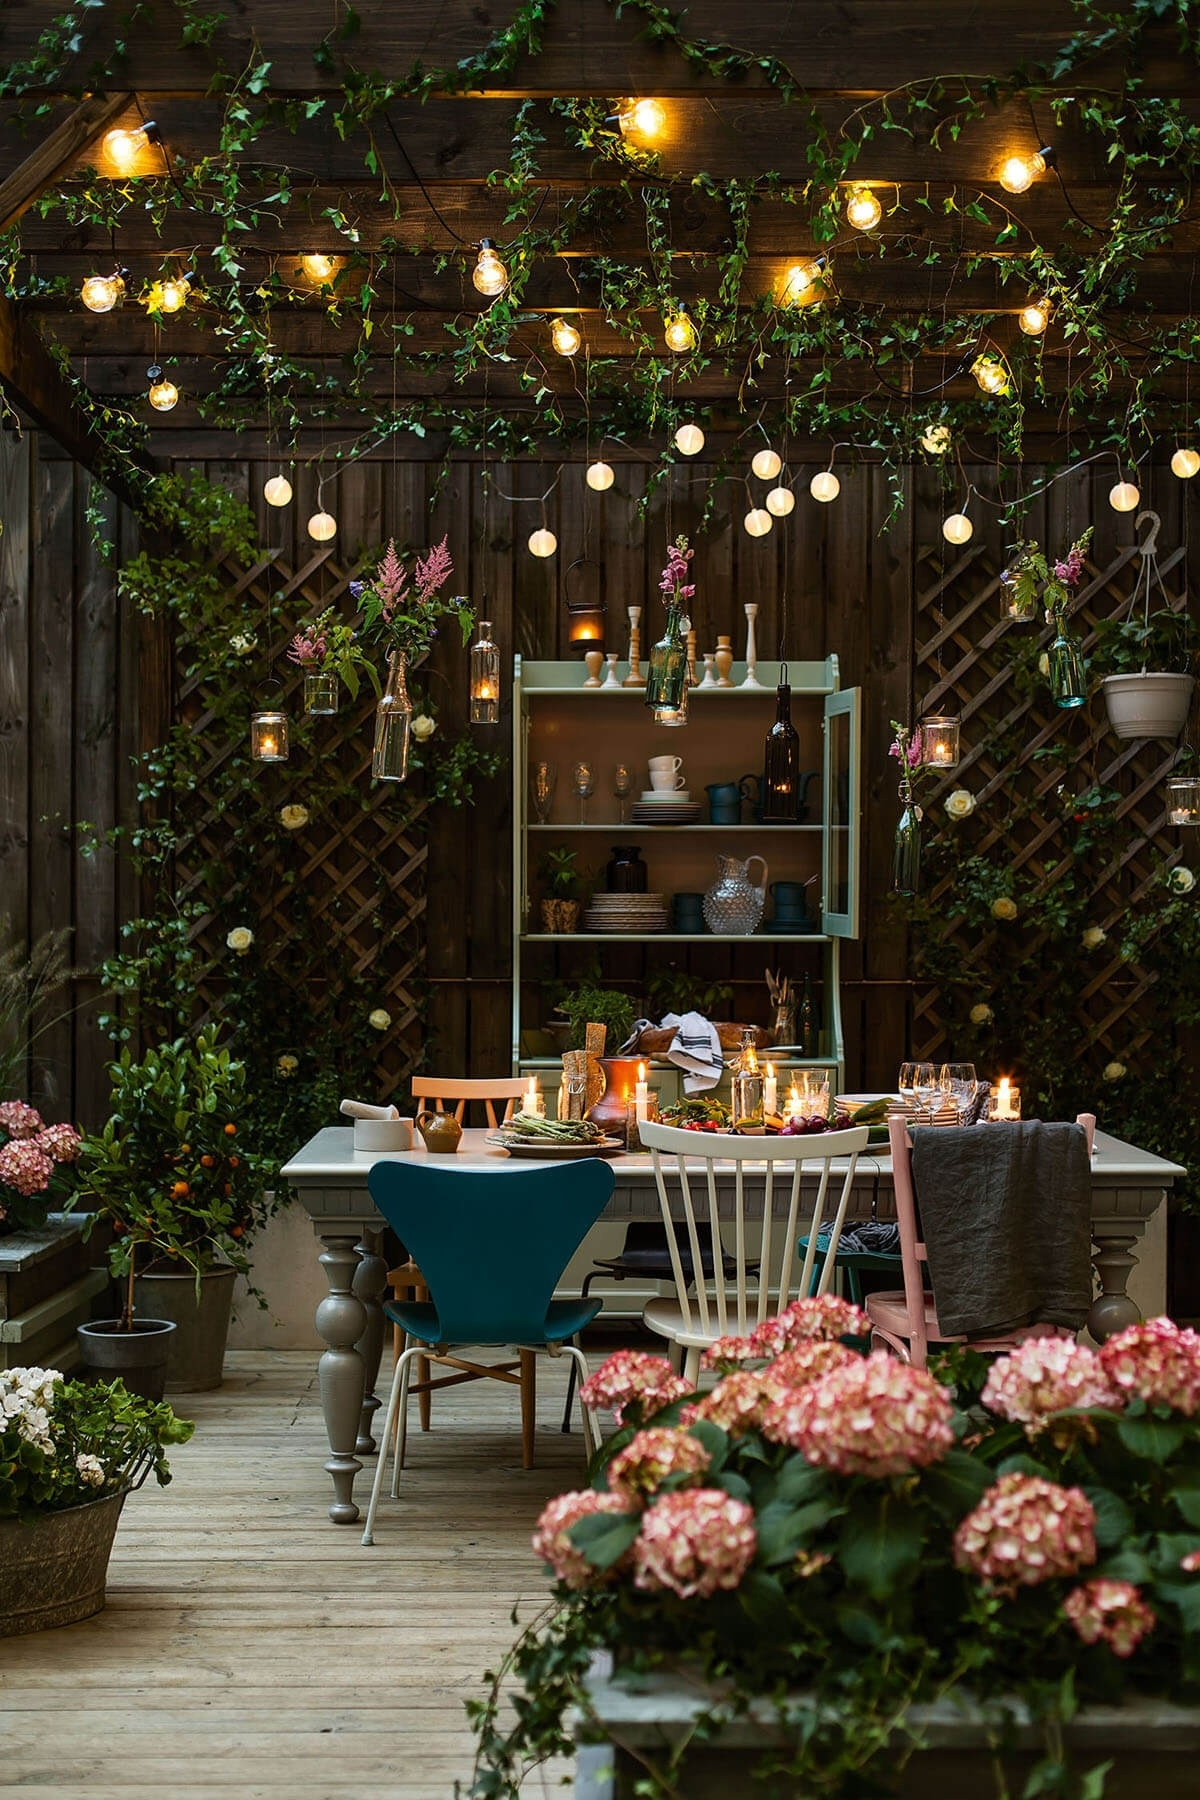 27 Best Backyard Lighting Ideas And Designs For 2018 Within Outdoor Hanging Garden Lights (View 6 of 15)